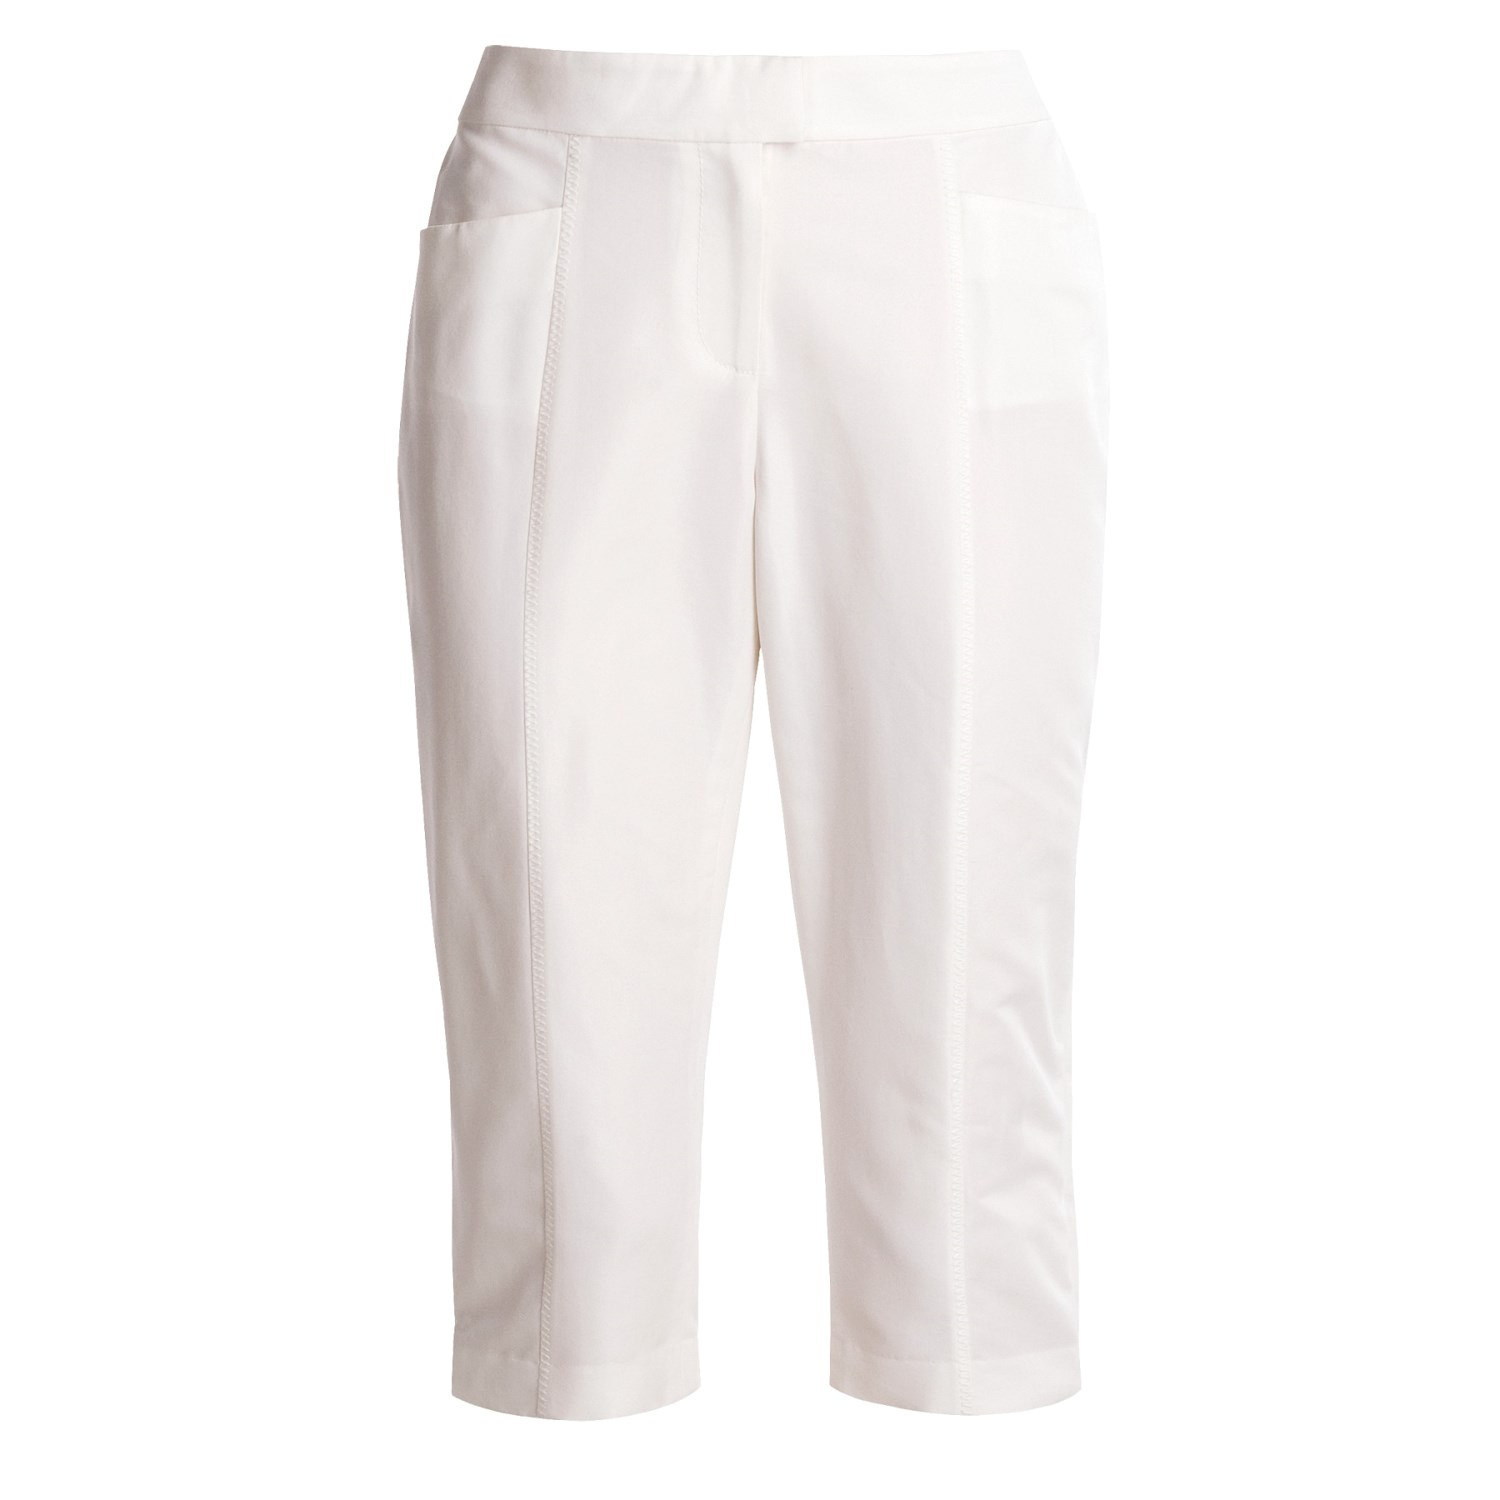 Womens White Cotton Pants